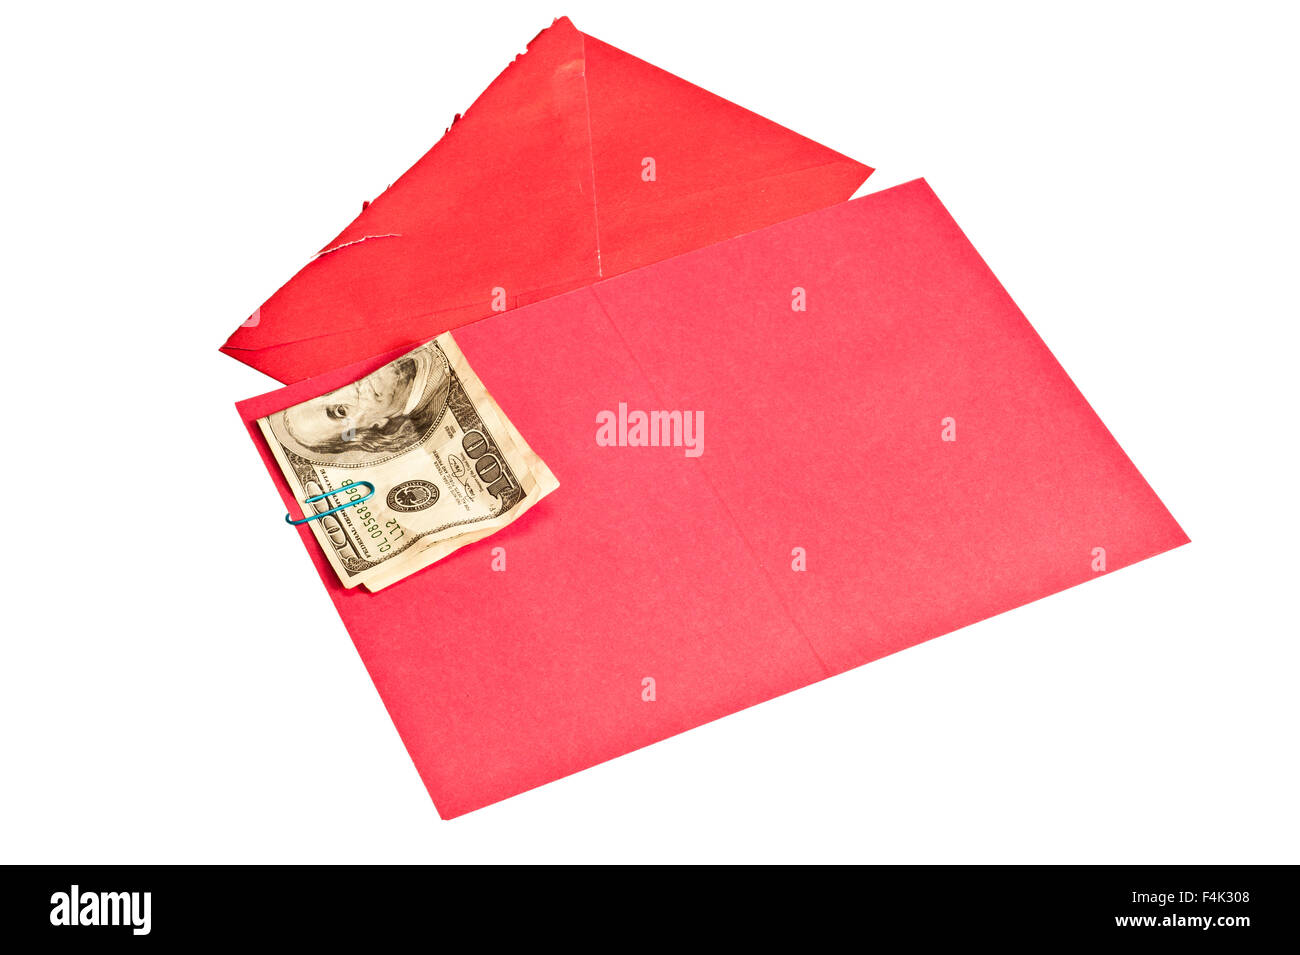 Crumpled Hundred Dollar Bill Inside Blank Red Greeting Card - Stock Image